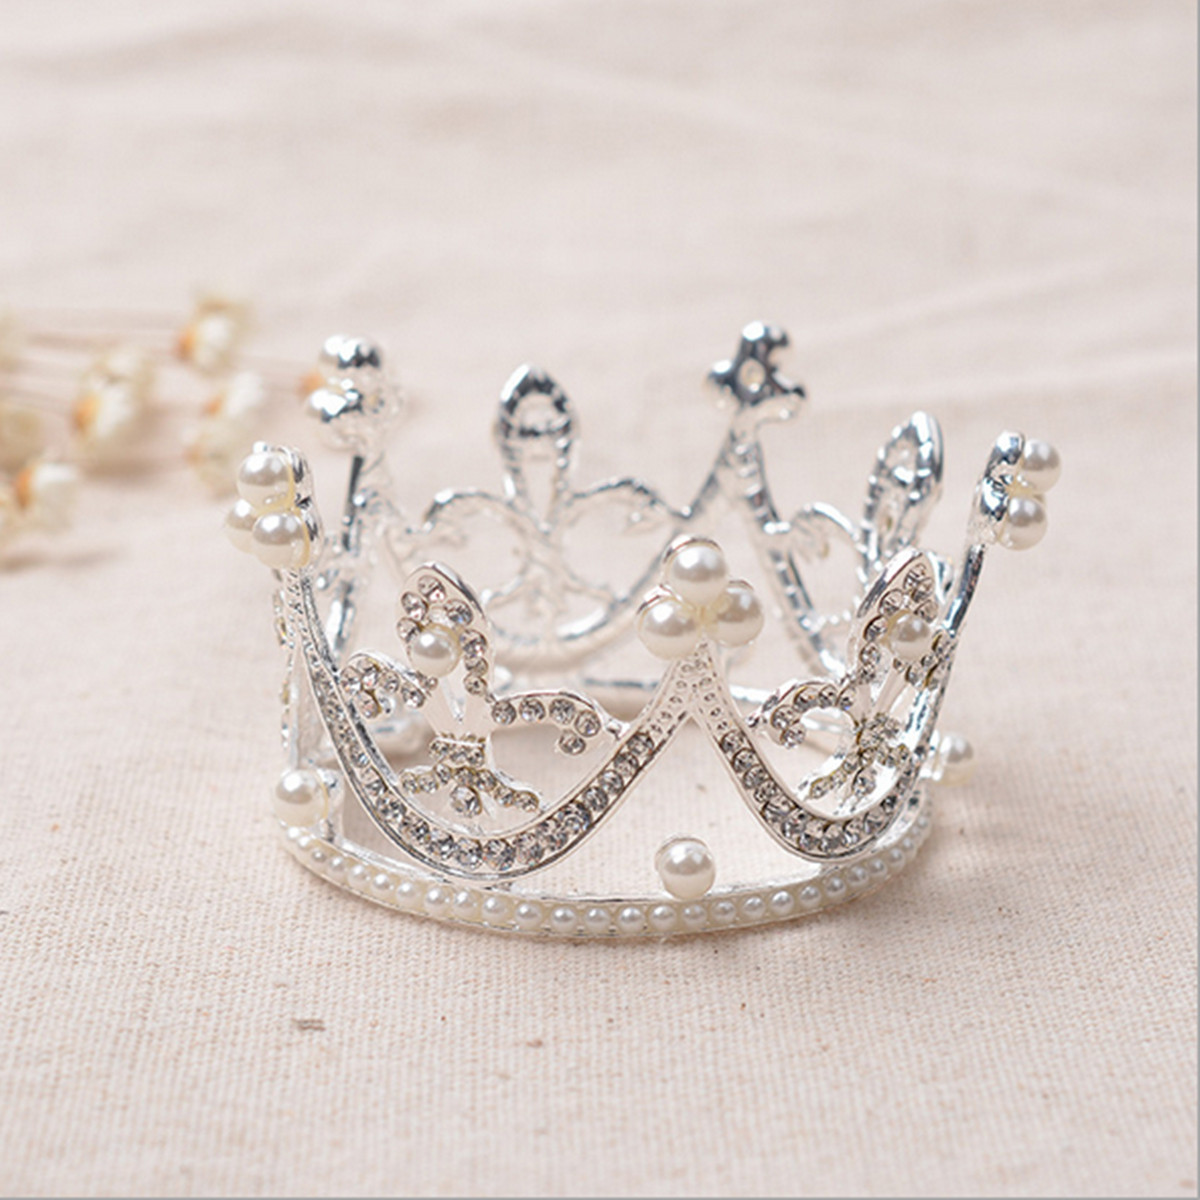 Bride Diamond Pearl Princess Queen Crystal Rhinestone Tiara Wedding Bridal Prom Party Crown